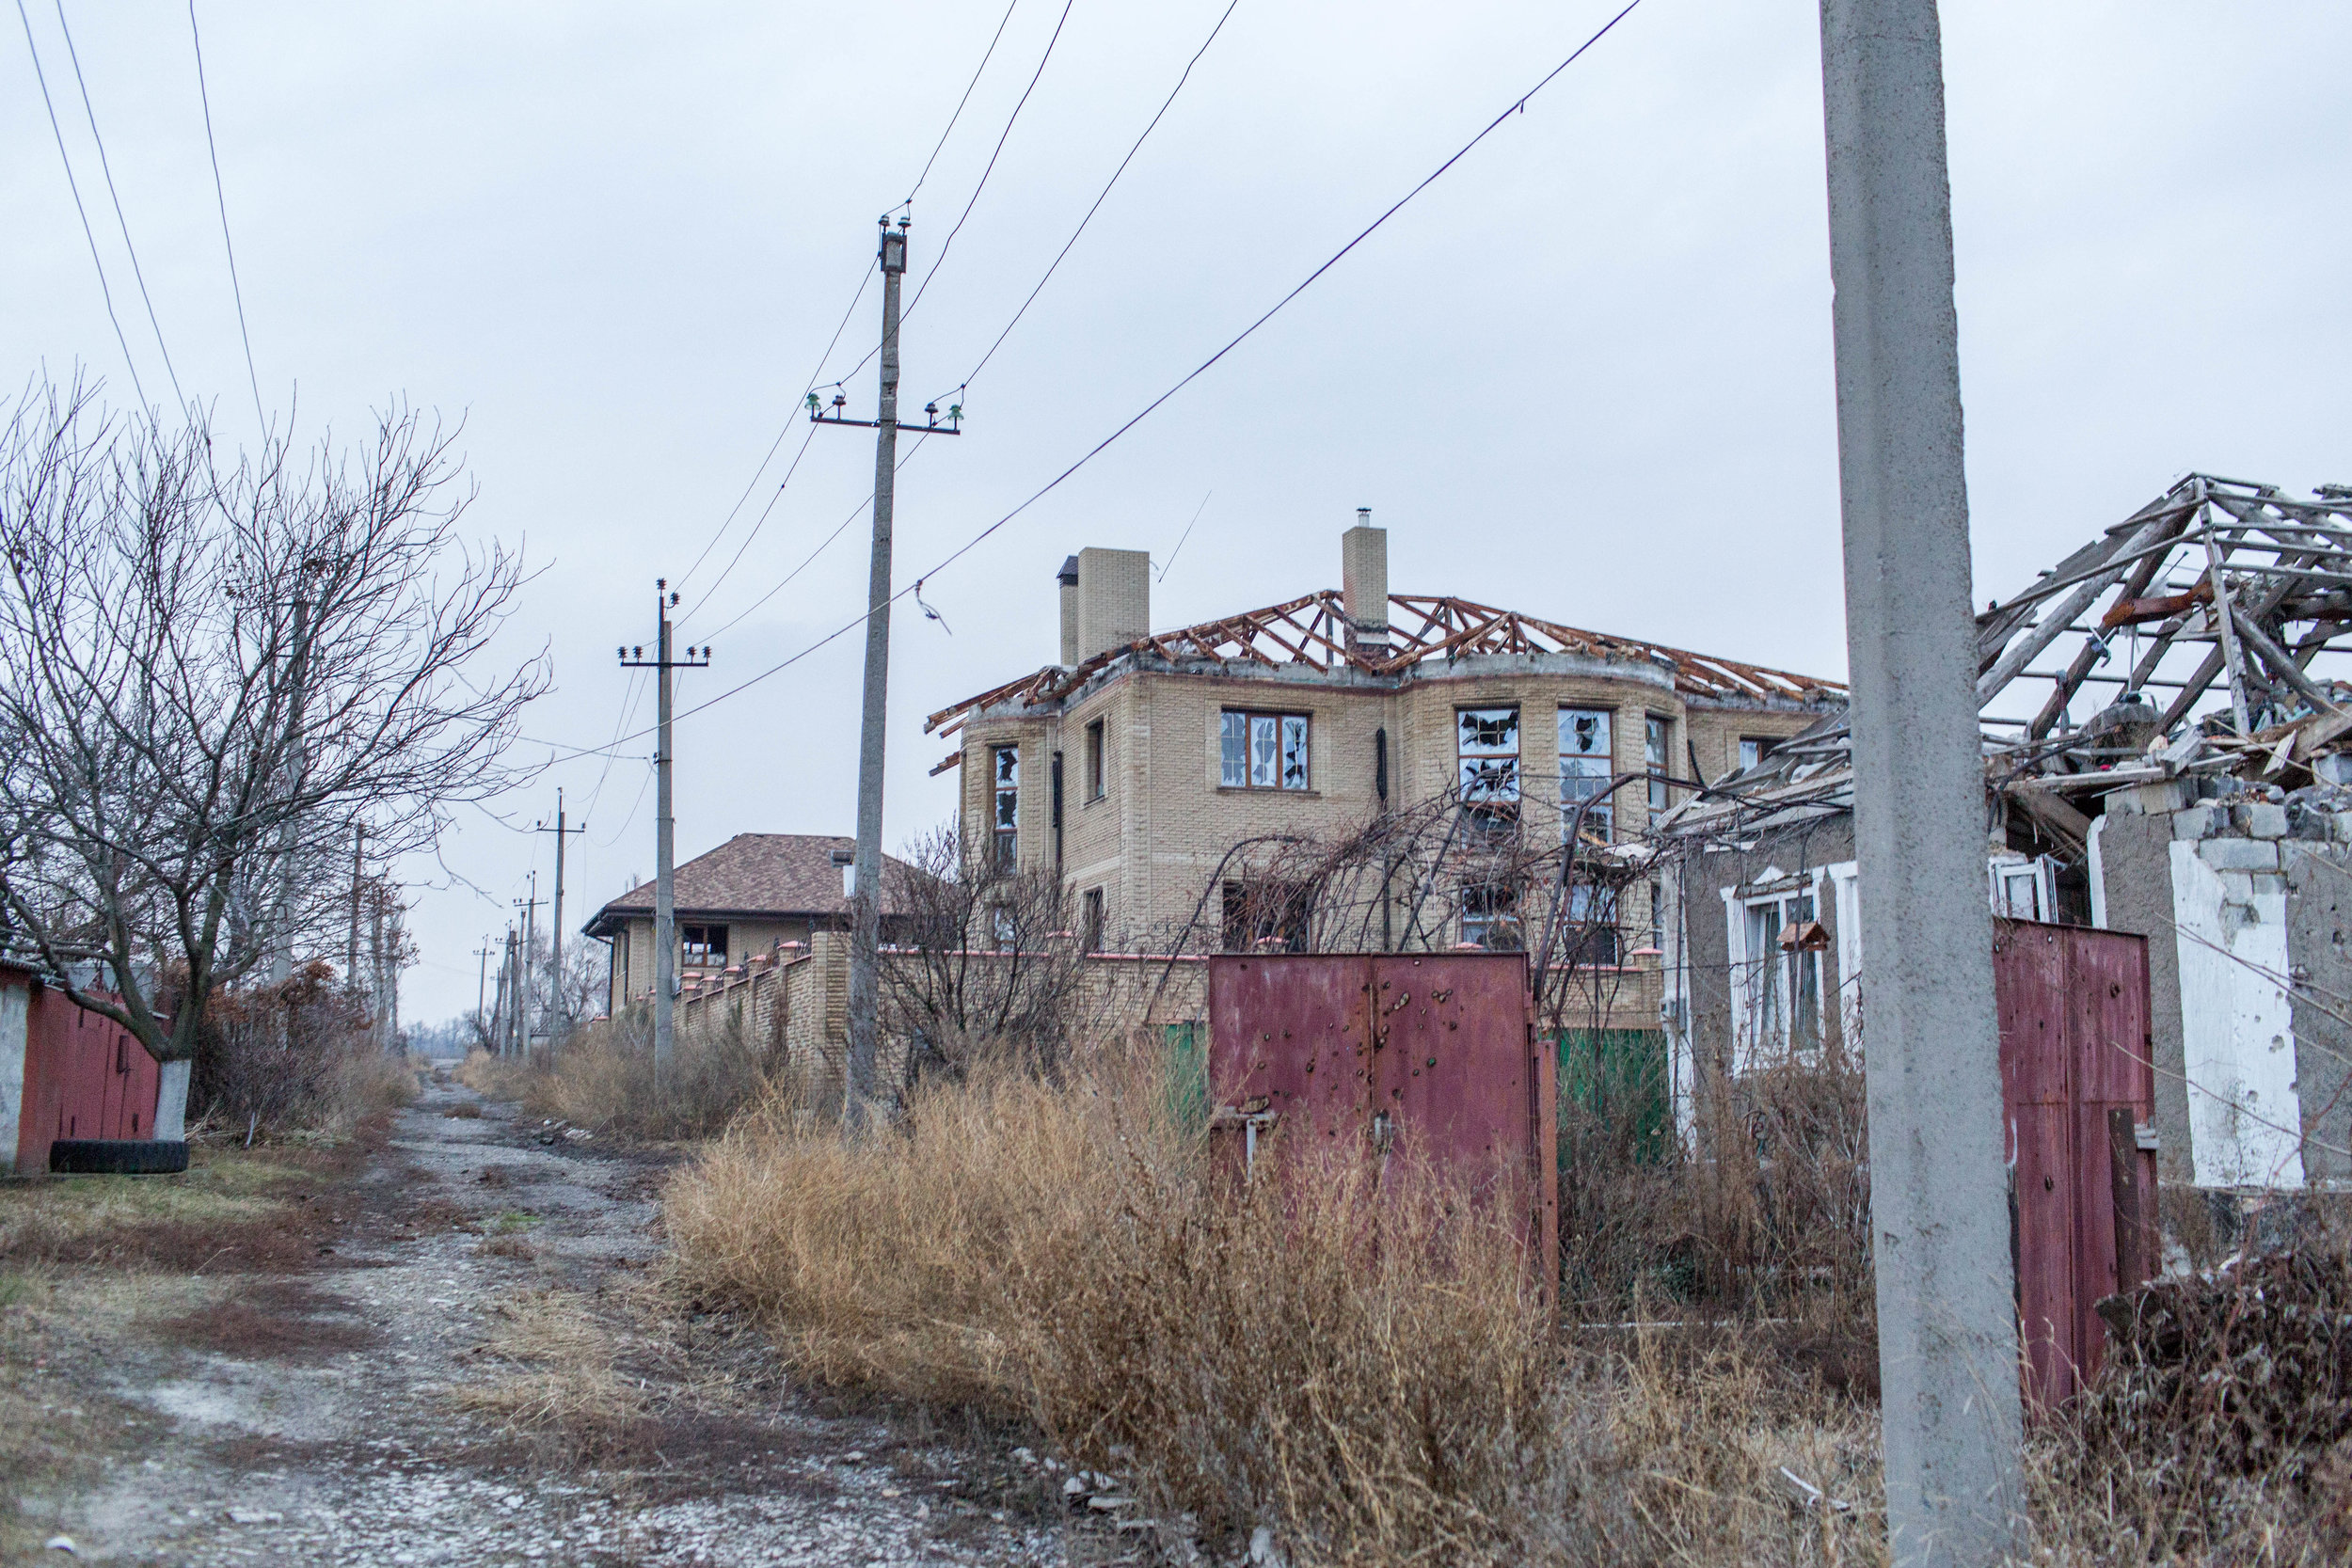 """Pisky was once a summer getaway hotspot, but now lays in ruins. Certain roads are are regularly preyed upon by Separatist snipers hundreds of metres away. I record a conversation between two soldiers; one asks the other how he is, """"Still alive"""", he replies. It's surreal, bittersweet humour, but the most humble representation of a frozen war with no end in sight."""